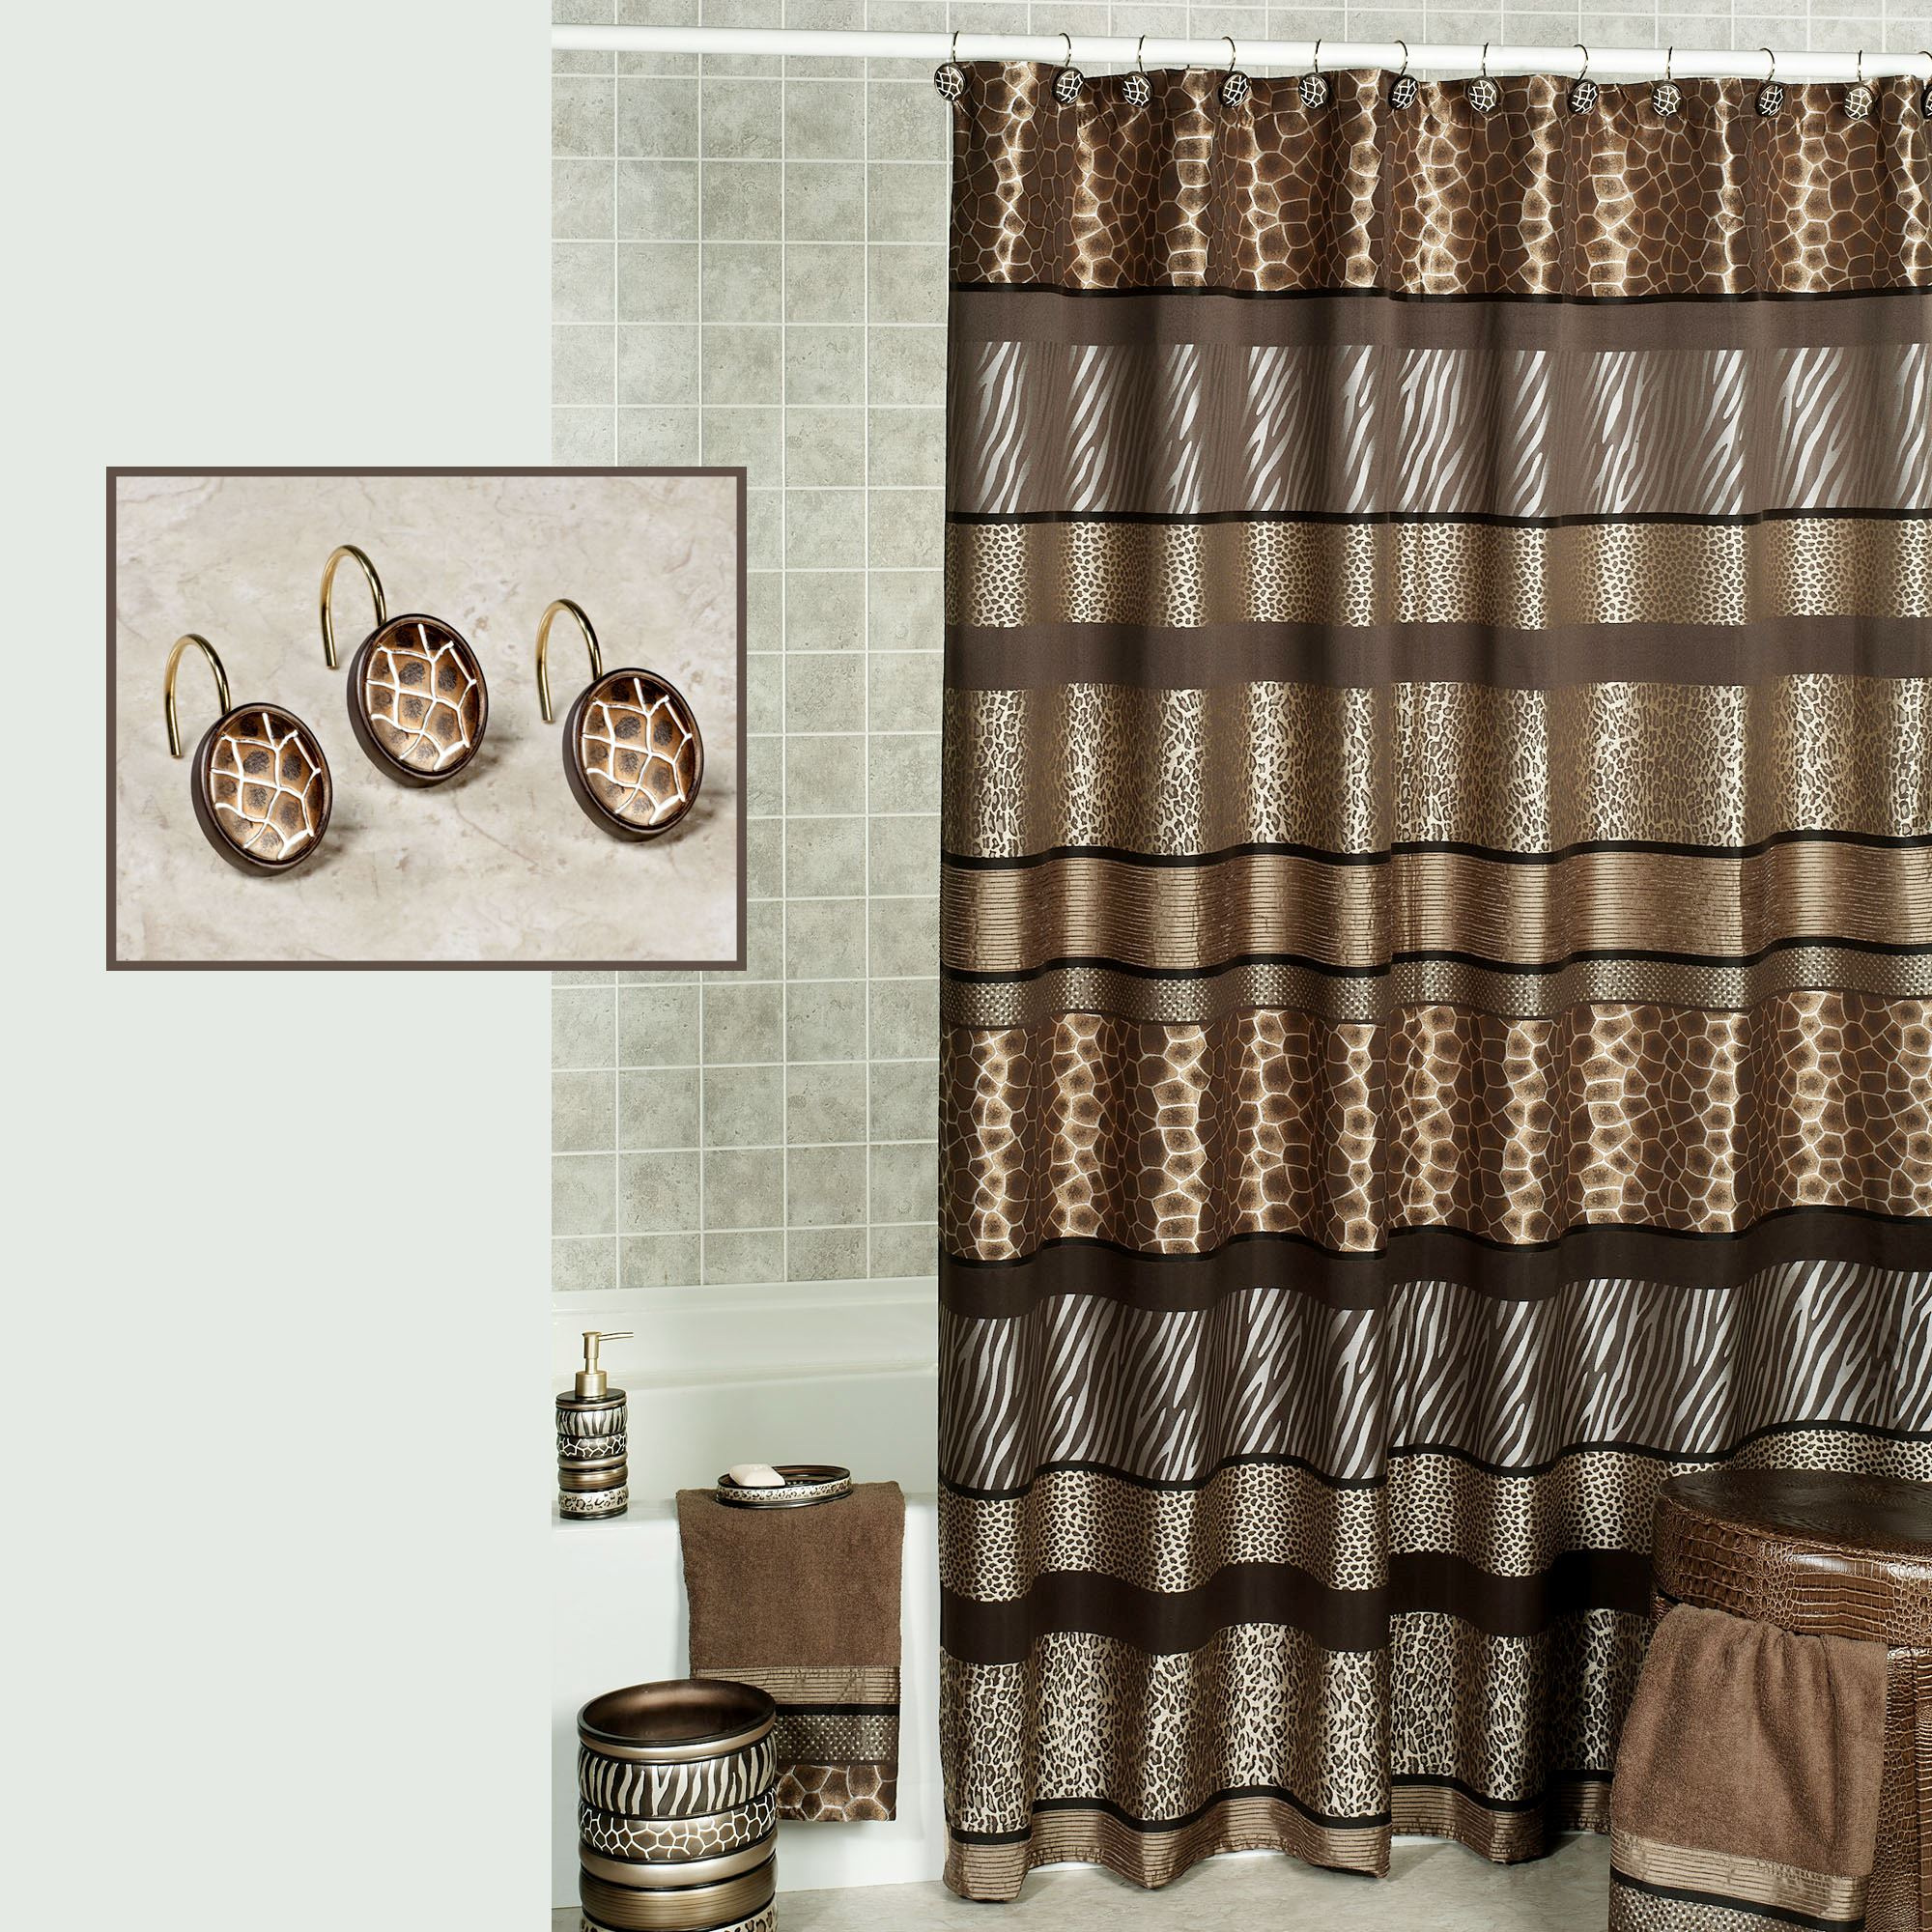 Safari Stripes Shower Curtain Multi Metallic 70 x 72